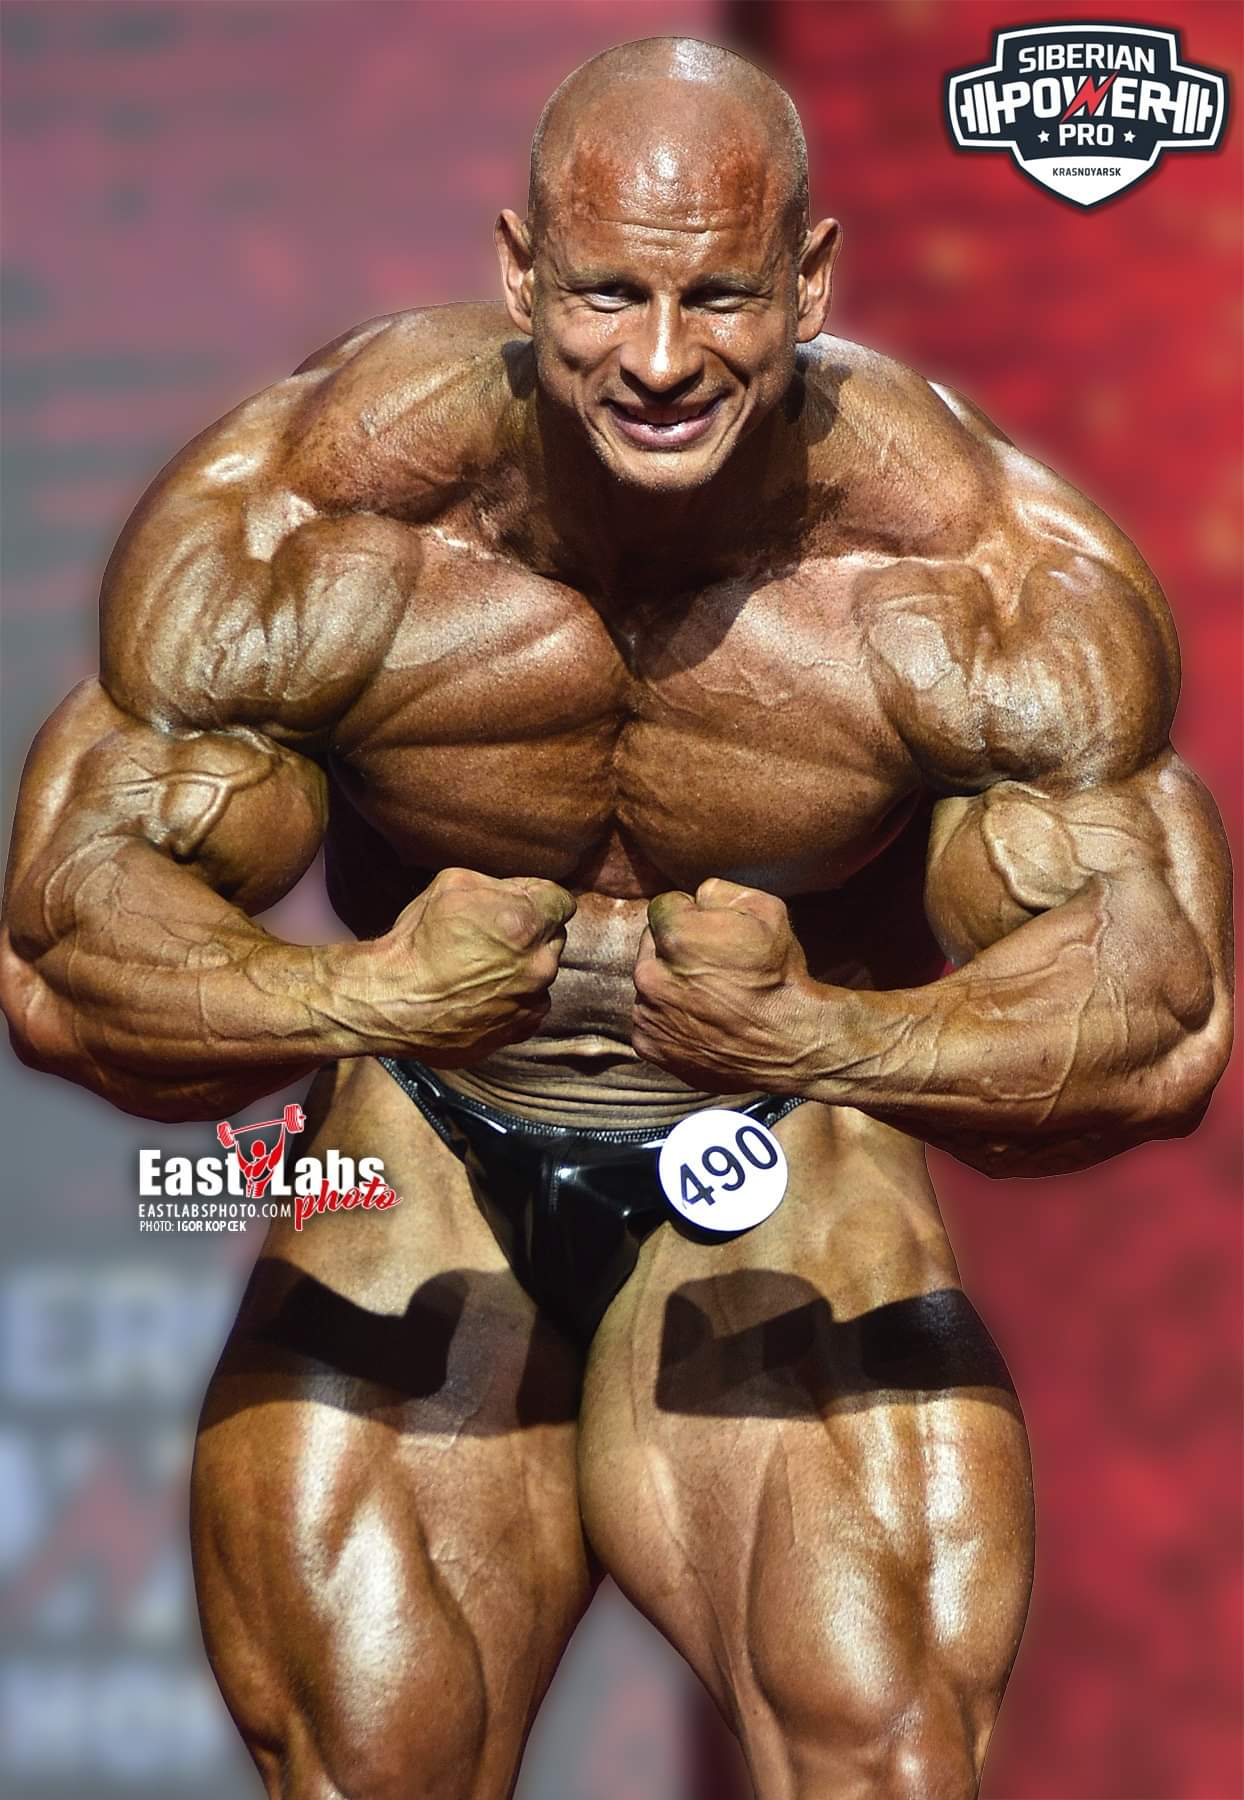 Michal Križánek esegue la posa di most muscular sul palco del siberian power show 2021